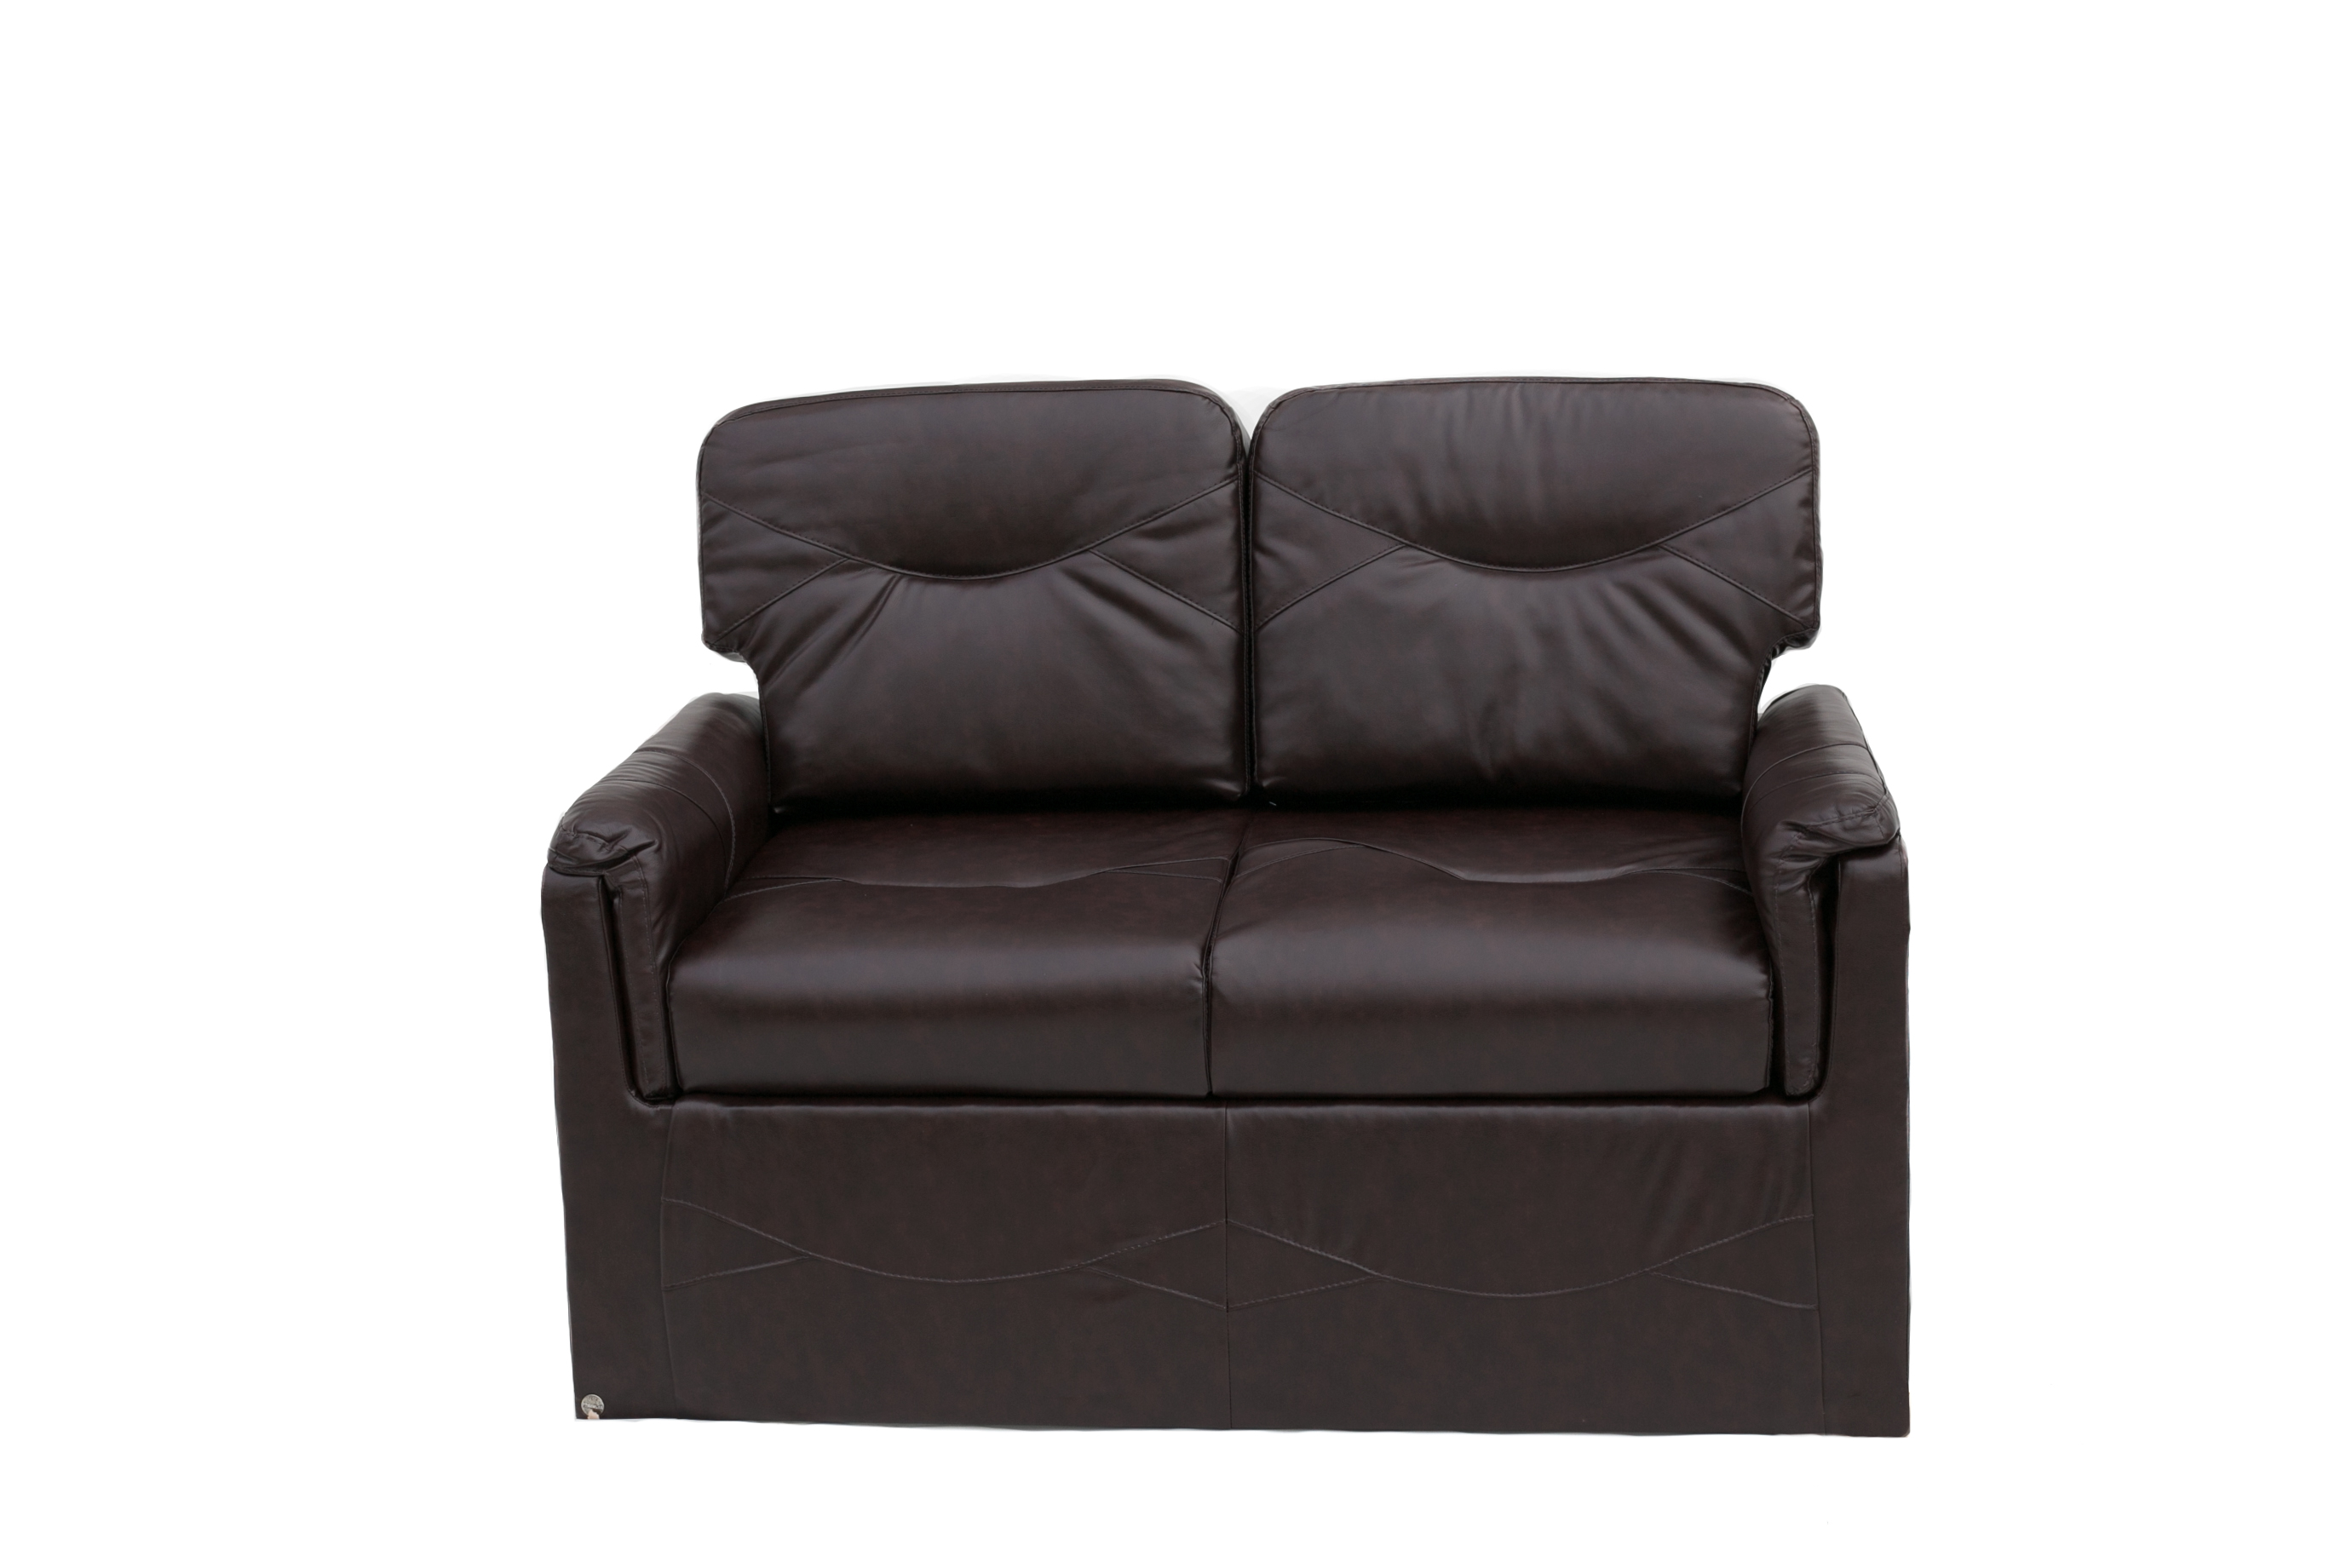 60 Trifold Sofa W Cutout In Jalico Chocolate Pr1801 009